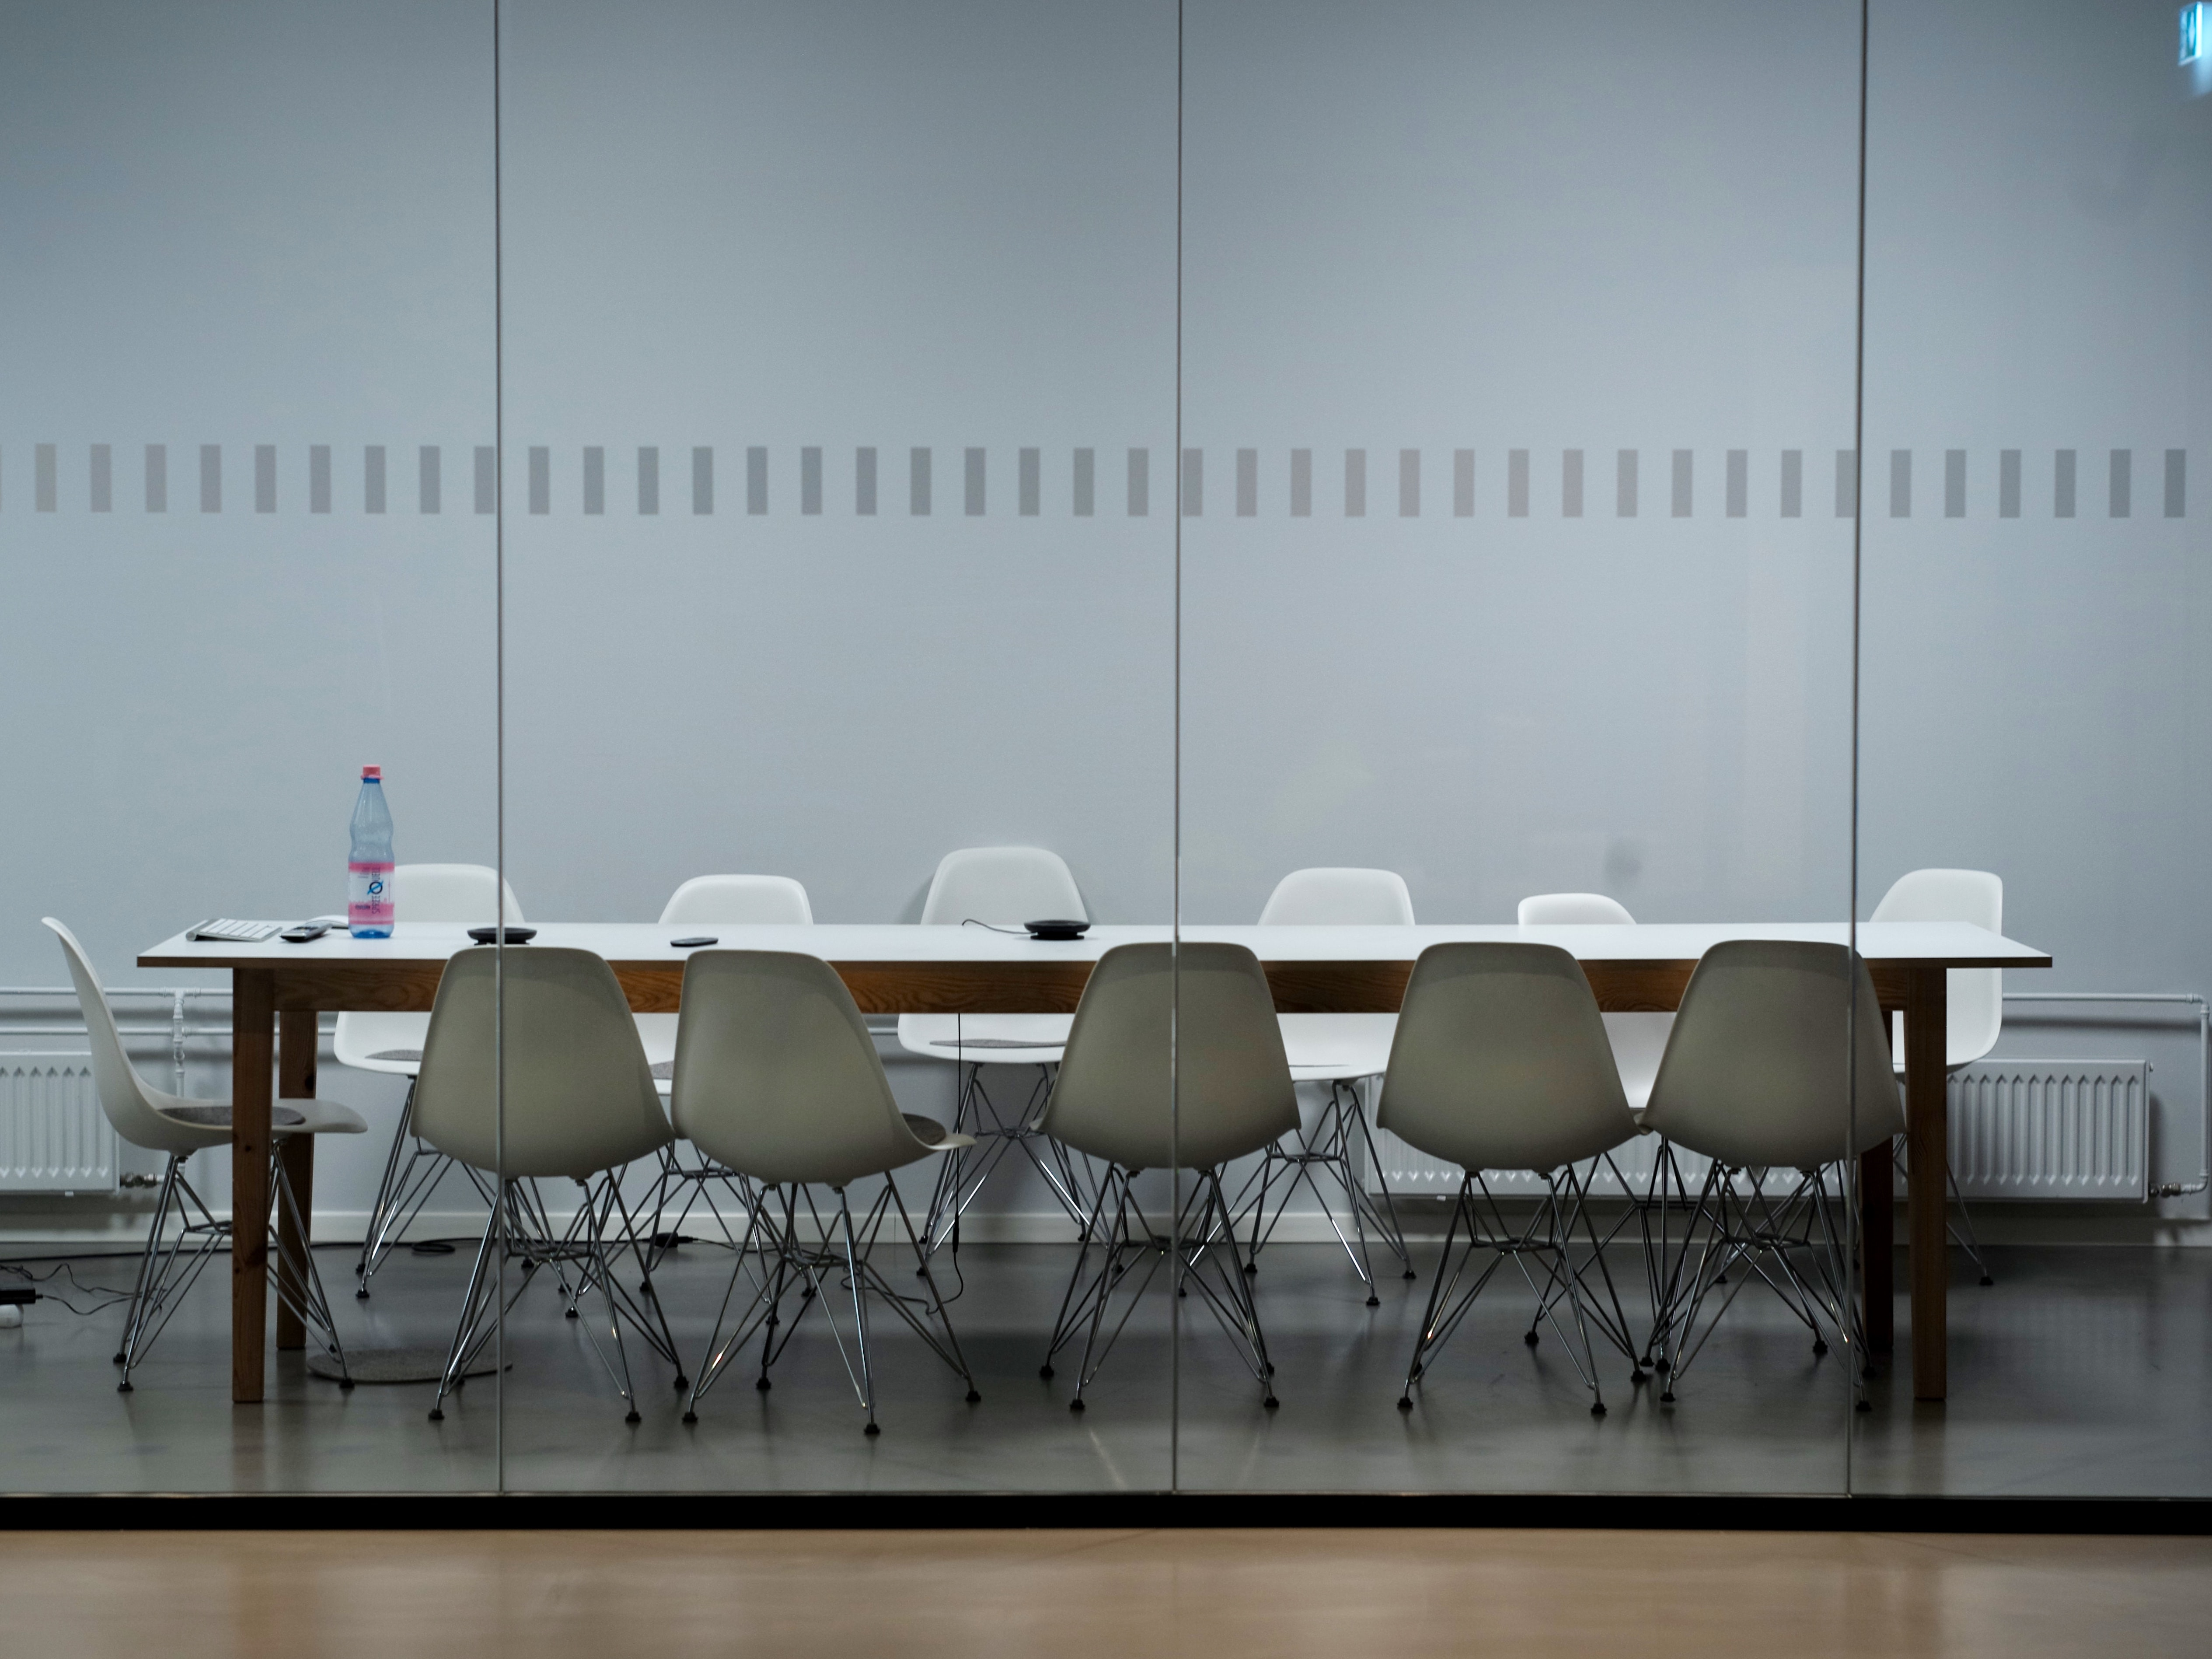 A table with white chairs in a meeting space in an office